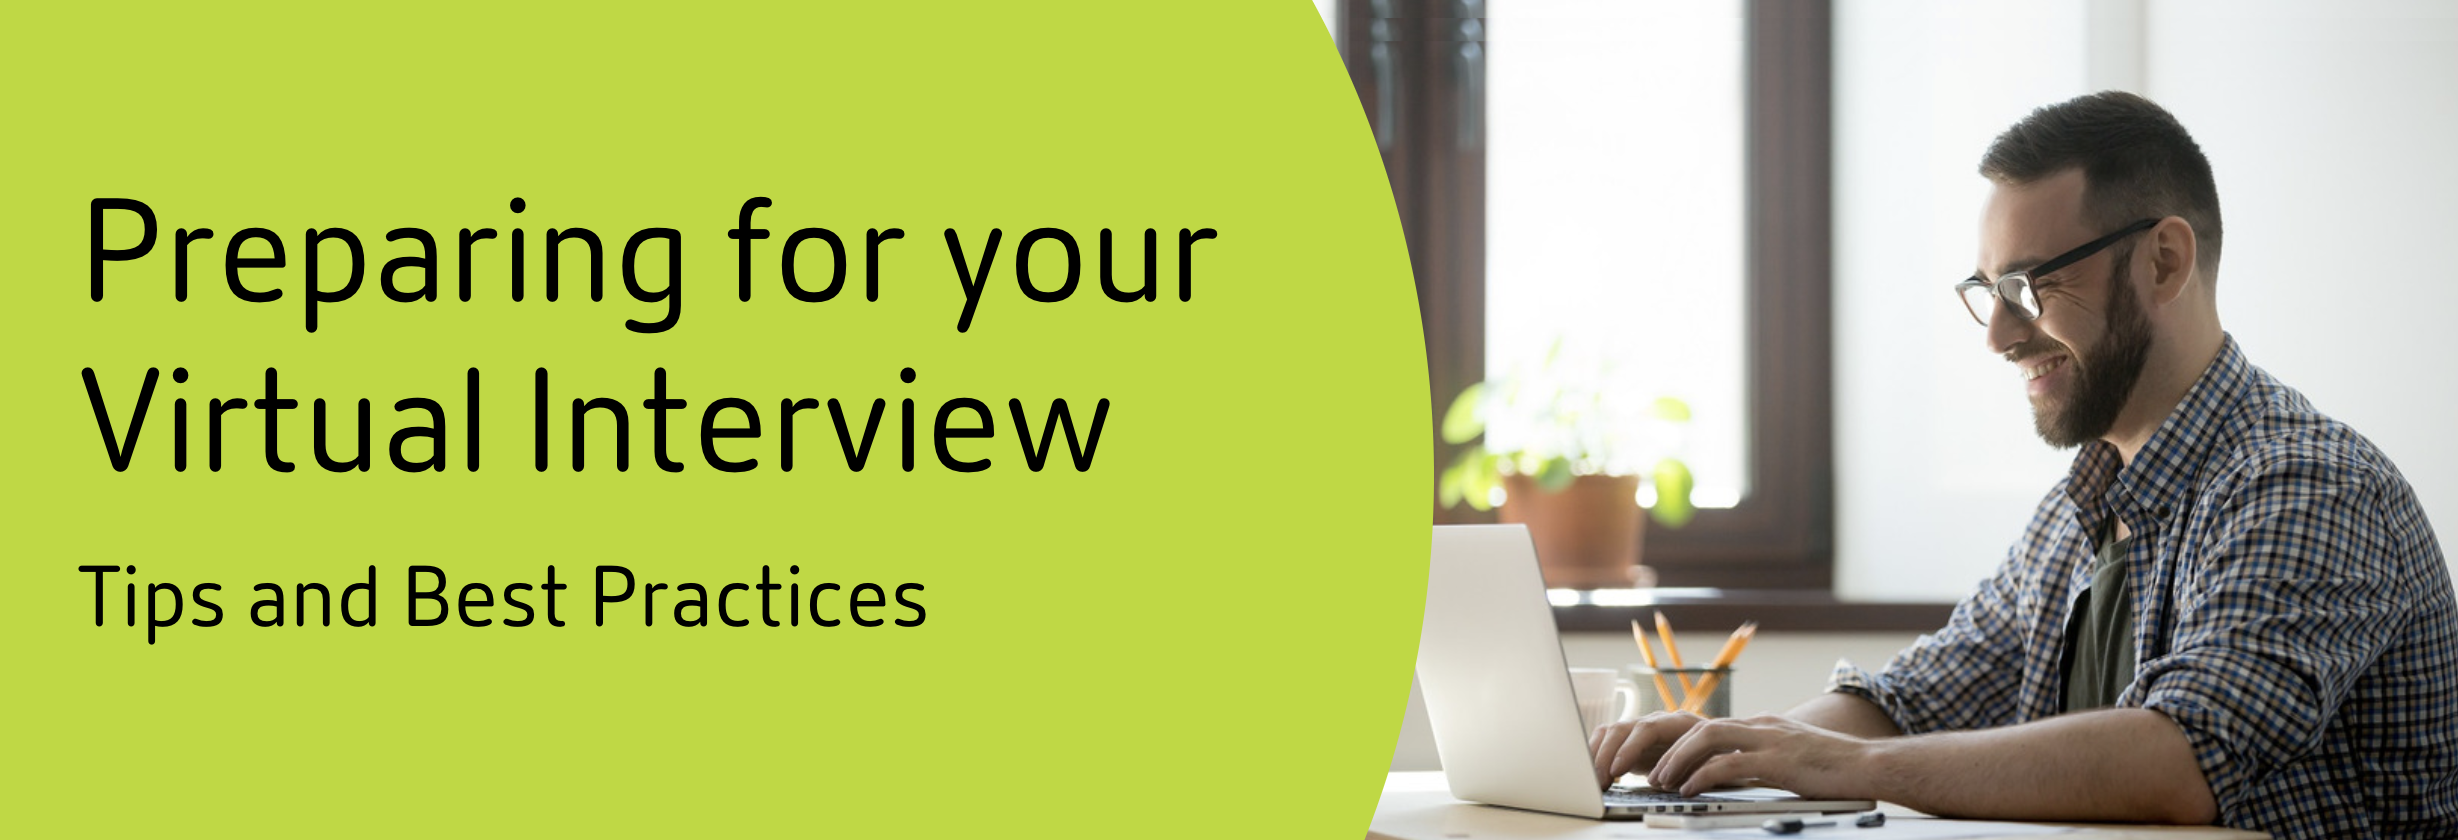 Prepping for your Virtual Interview, Tips and Best Practices